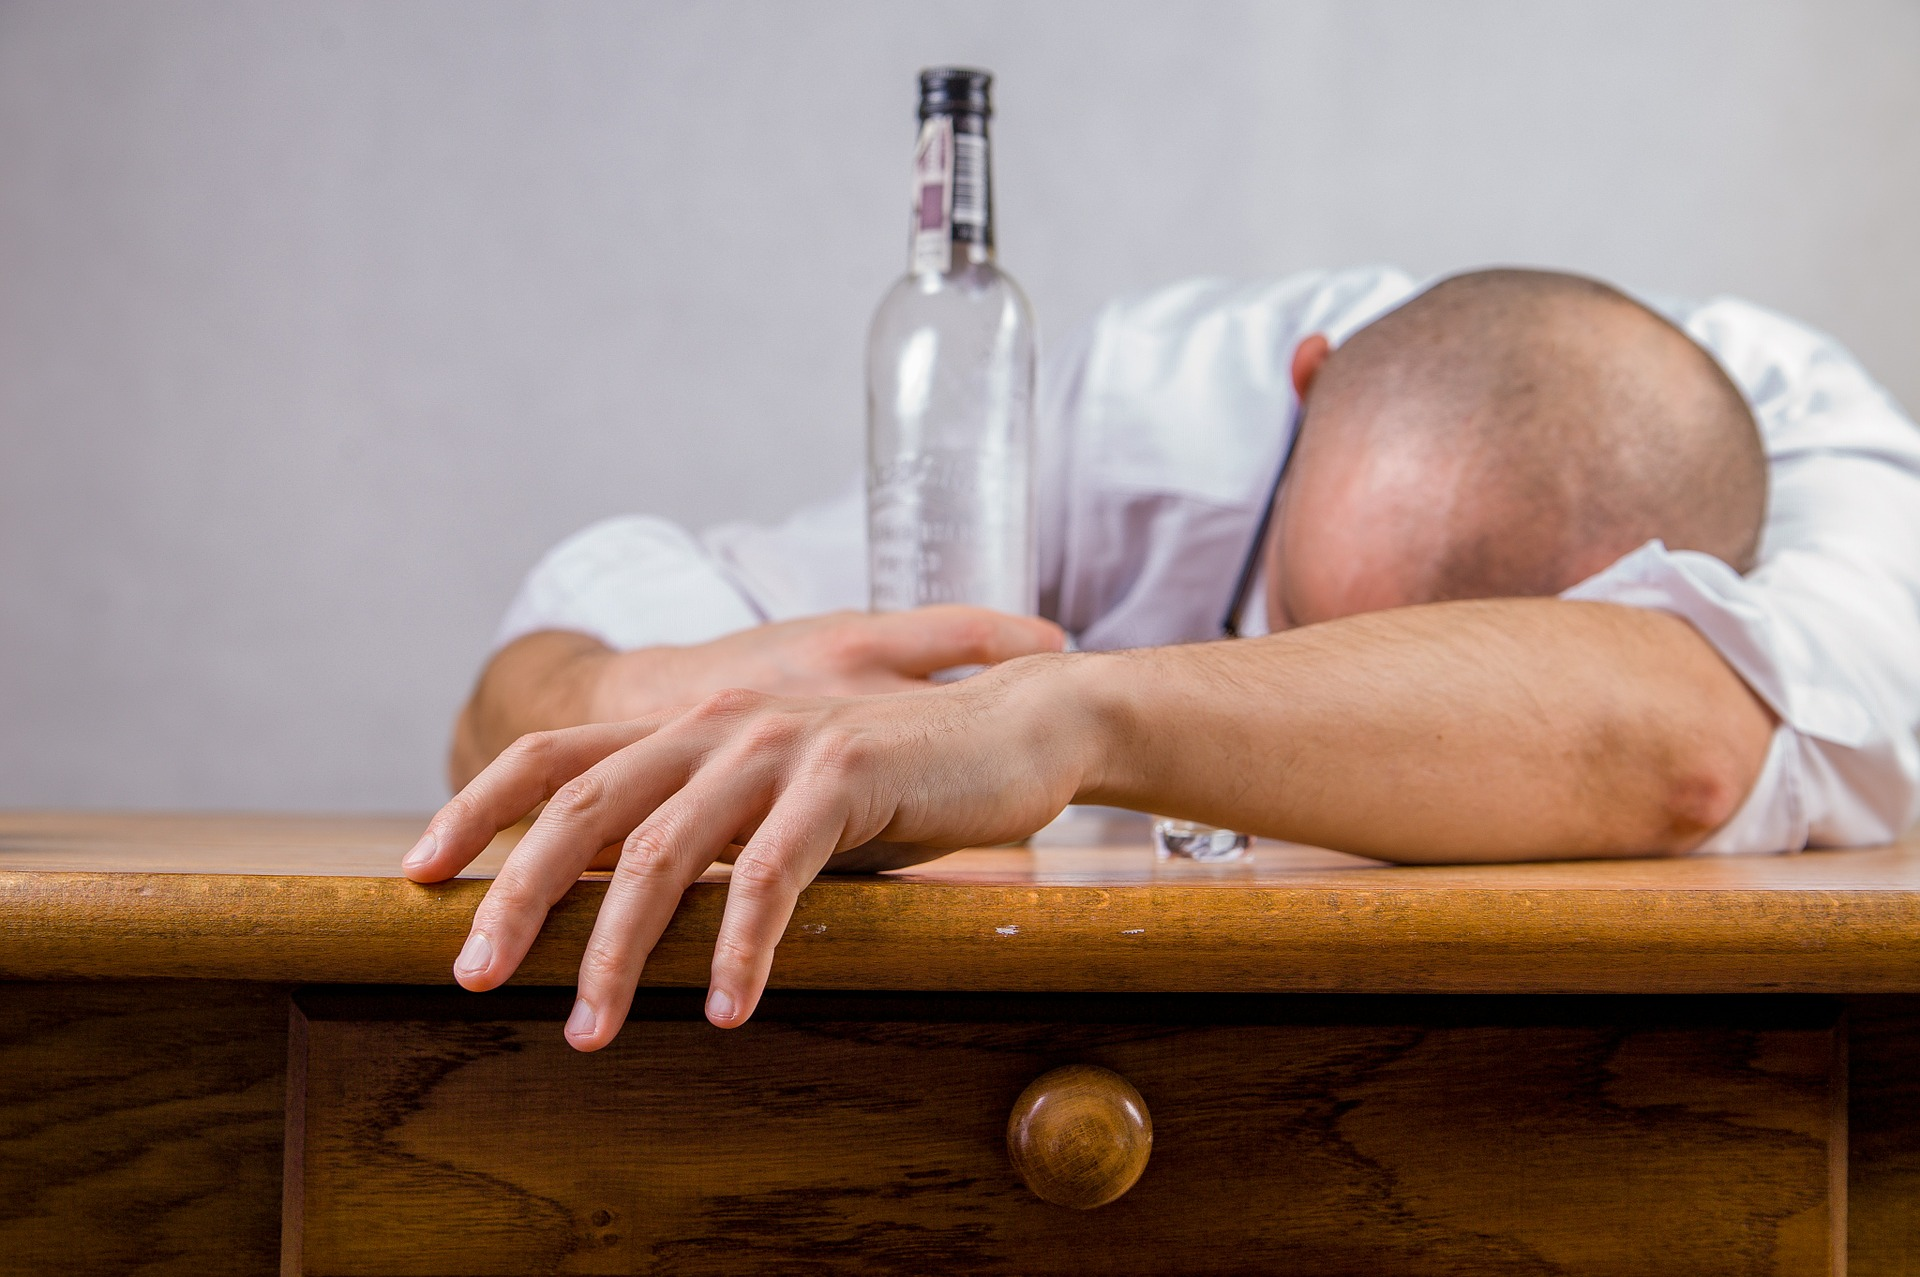 Man slumped over desk with empty alcohol bottle in his hand